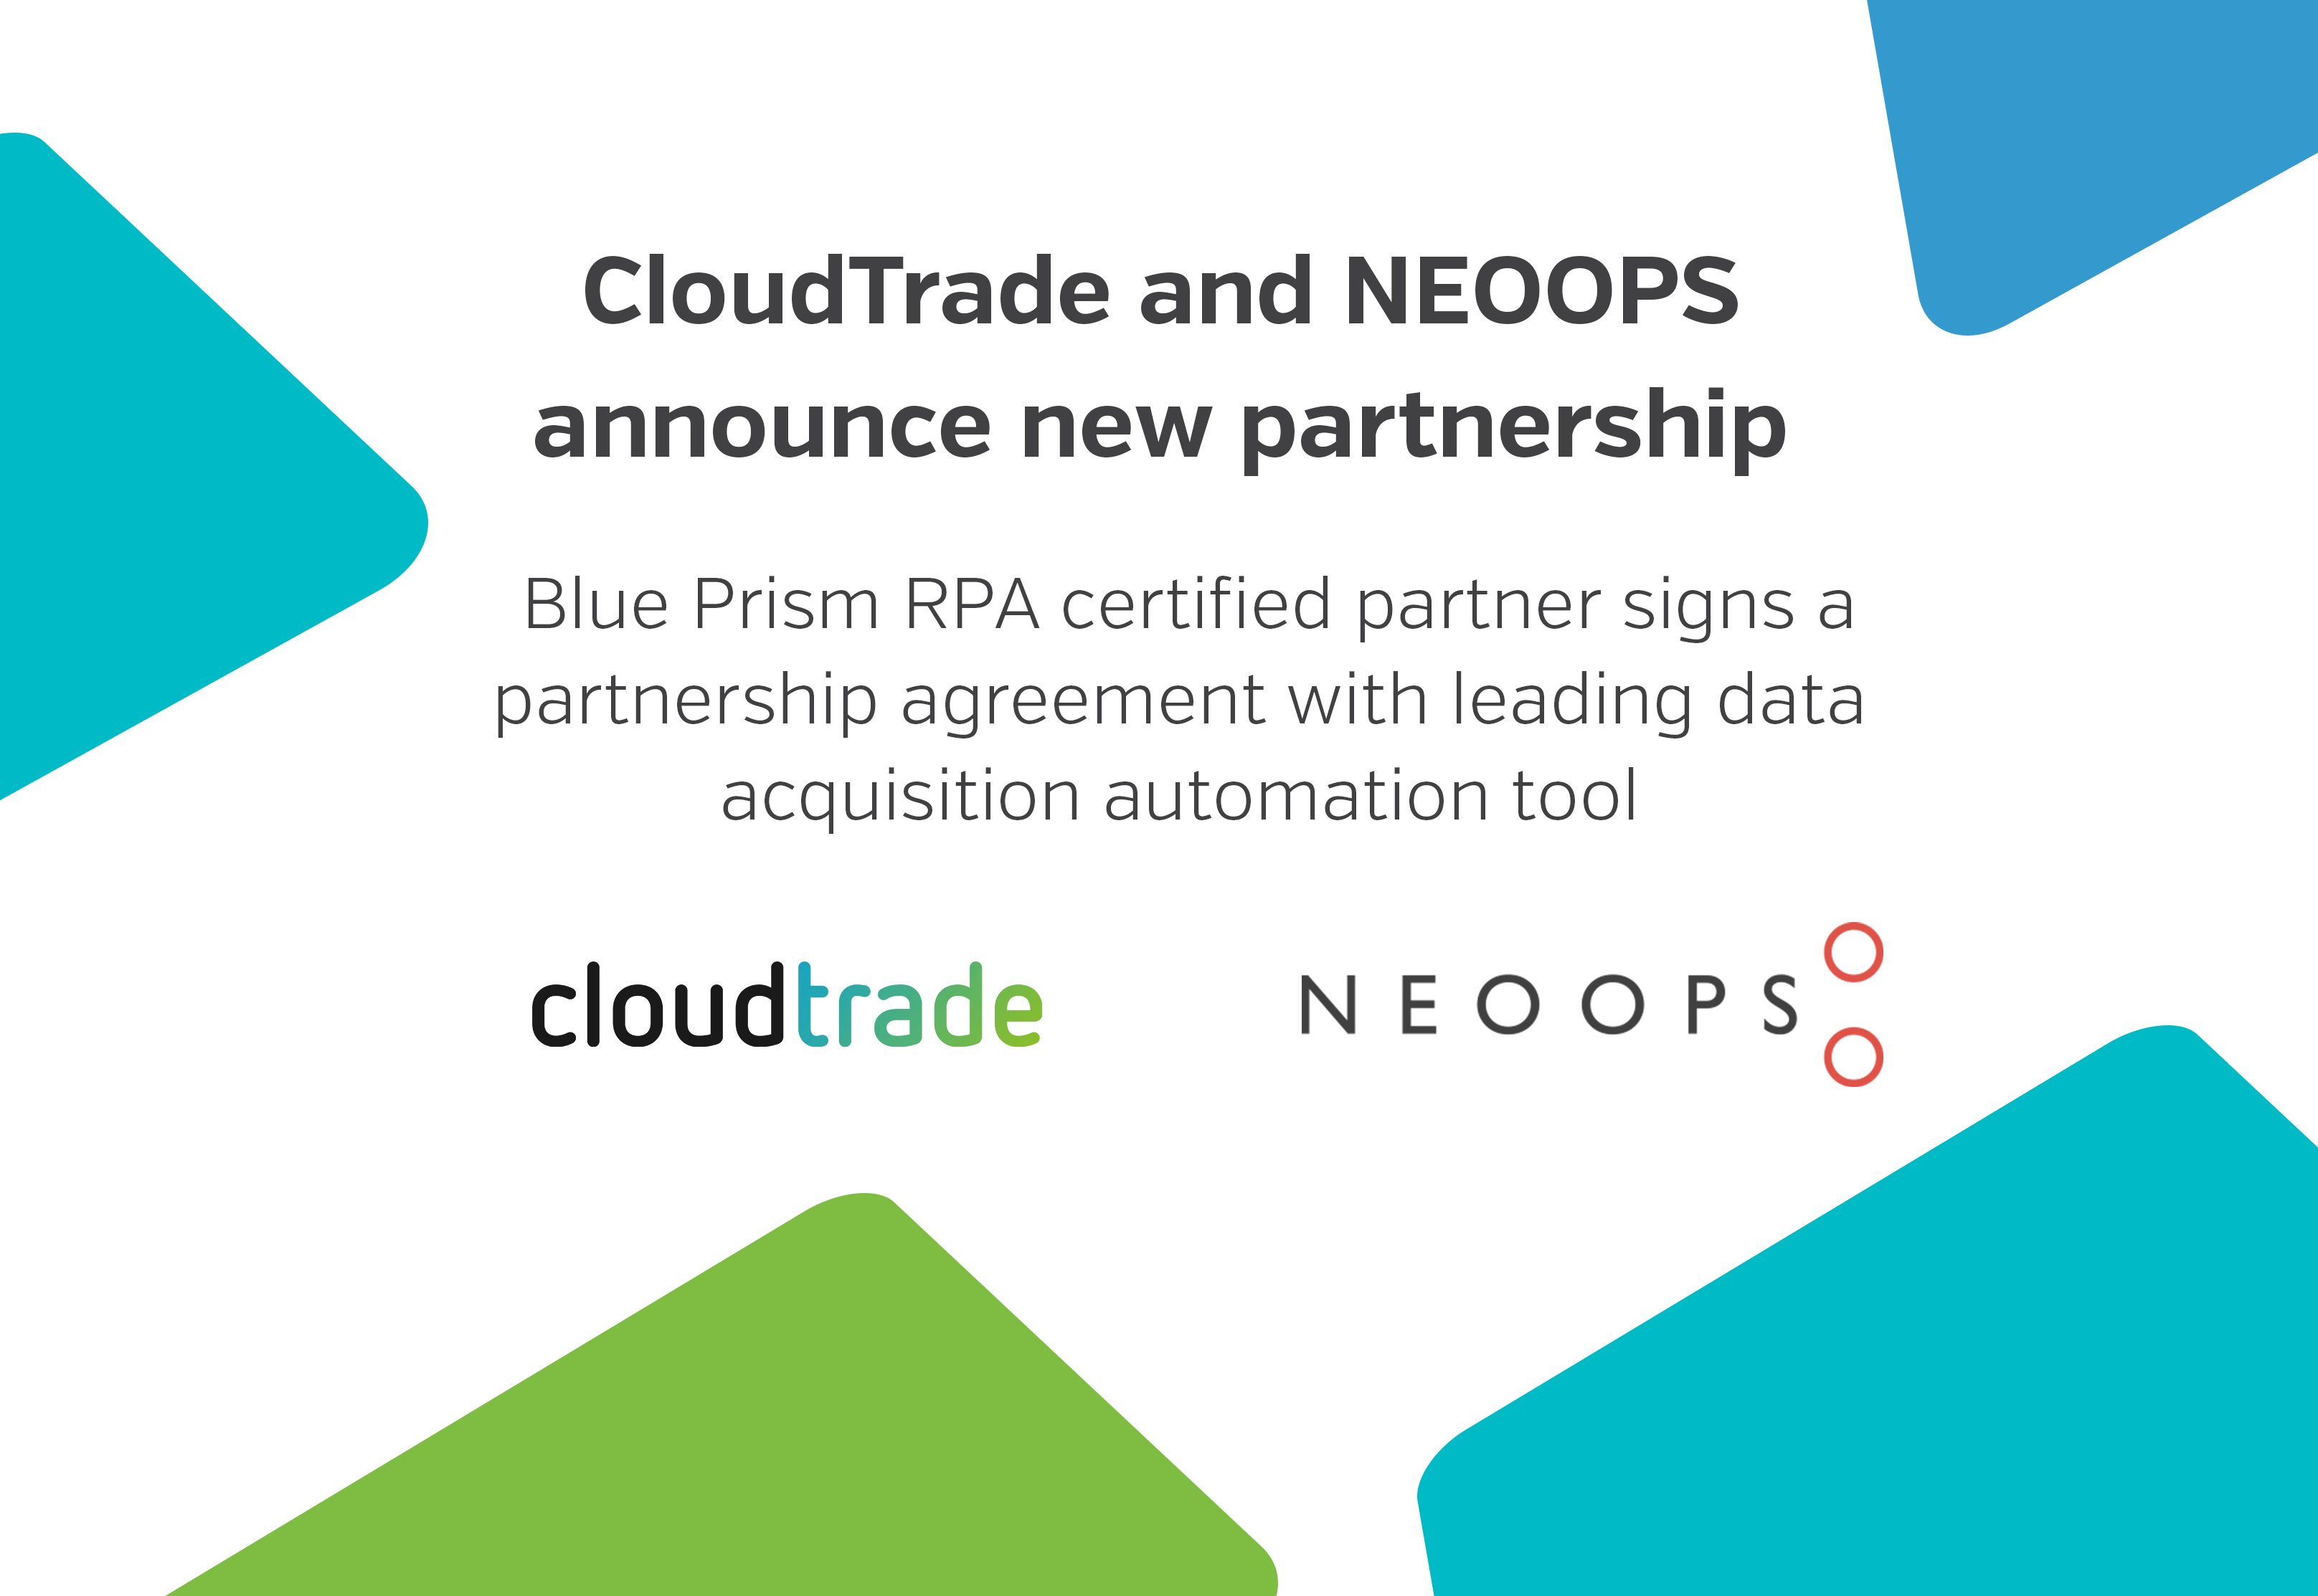 CloudTrade and NEOOPS announce new partnership